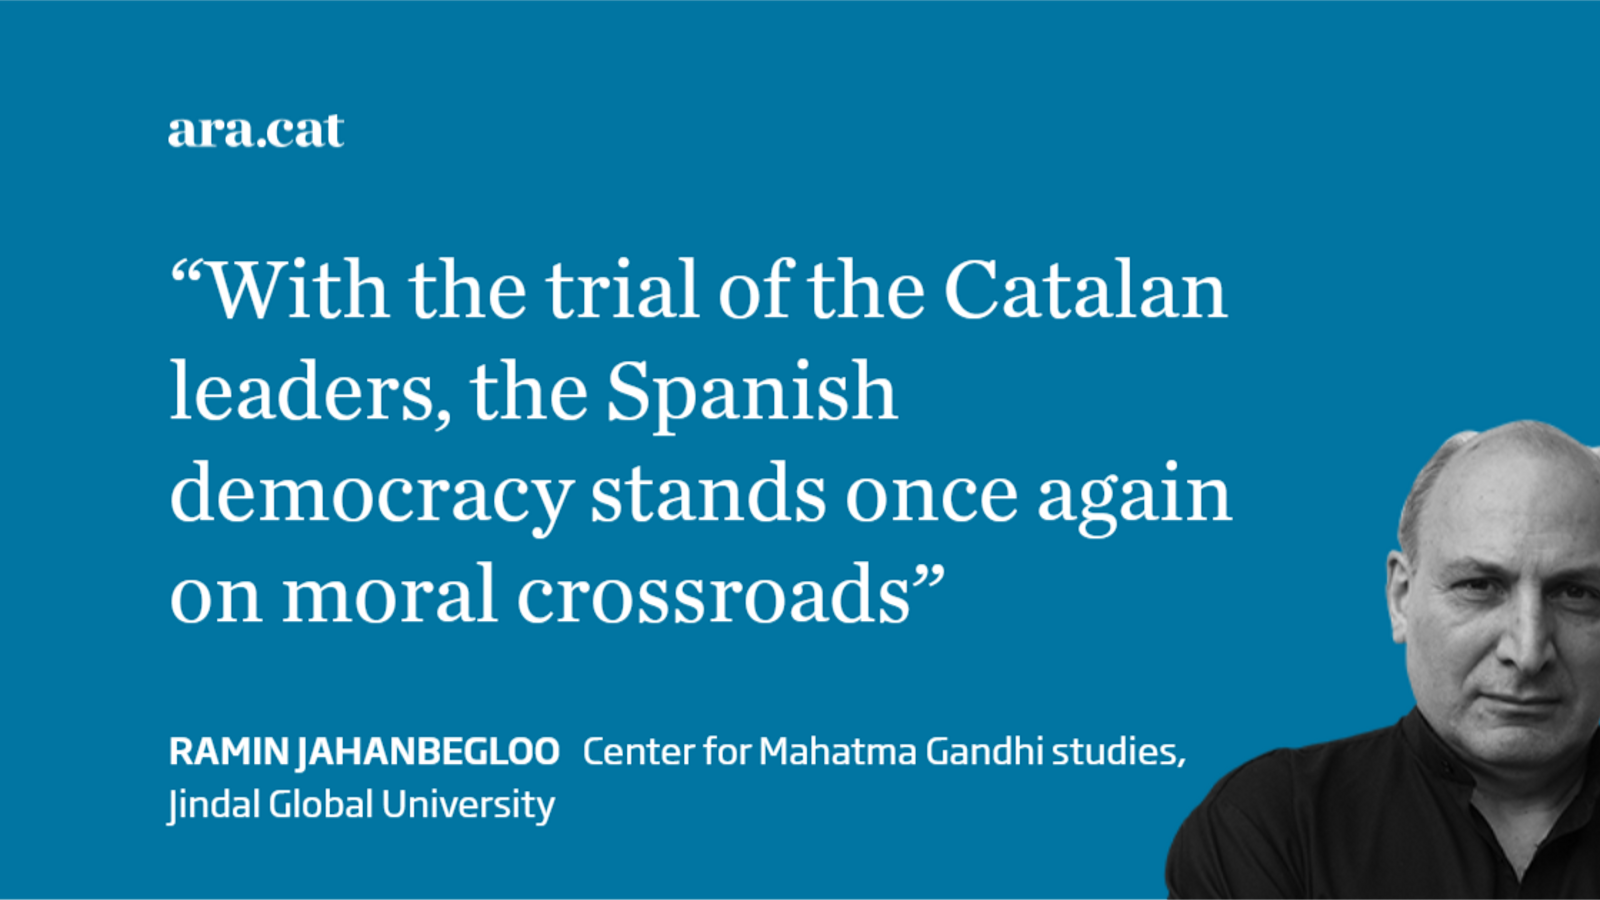 Witnessing Justice in Catalonia